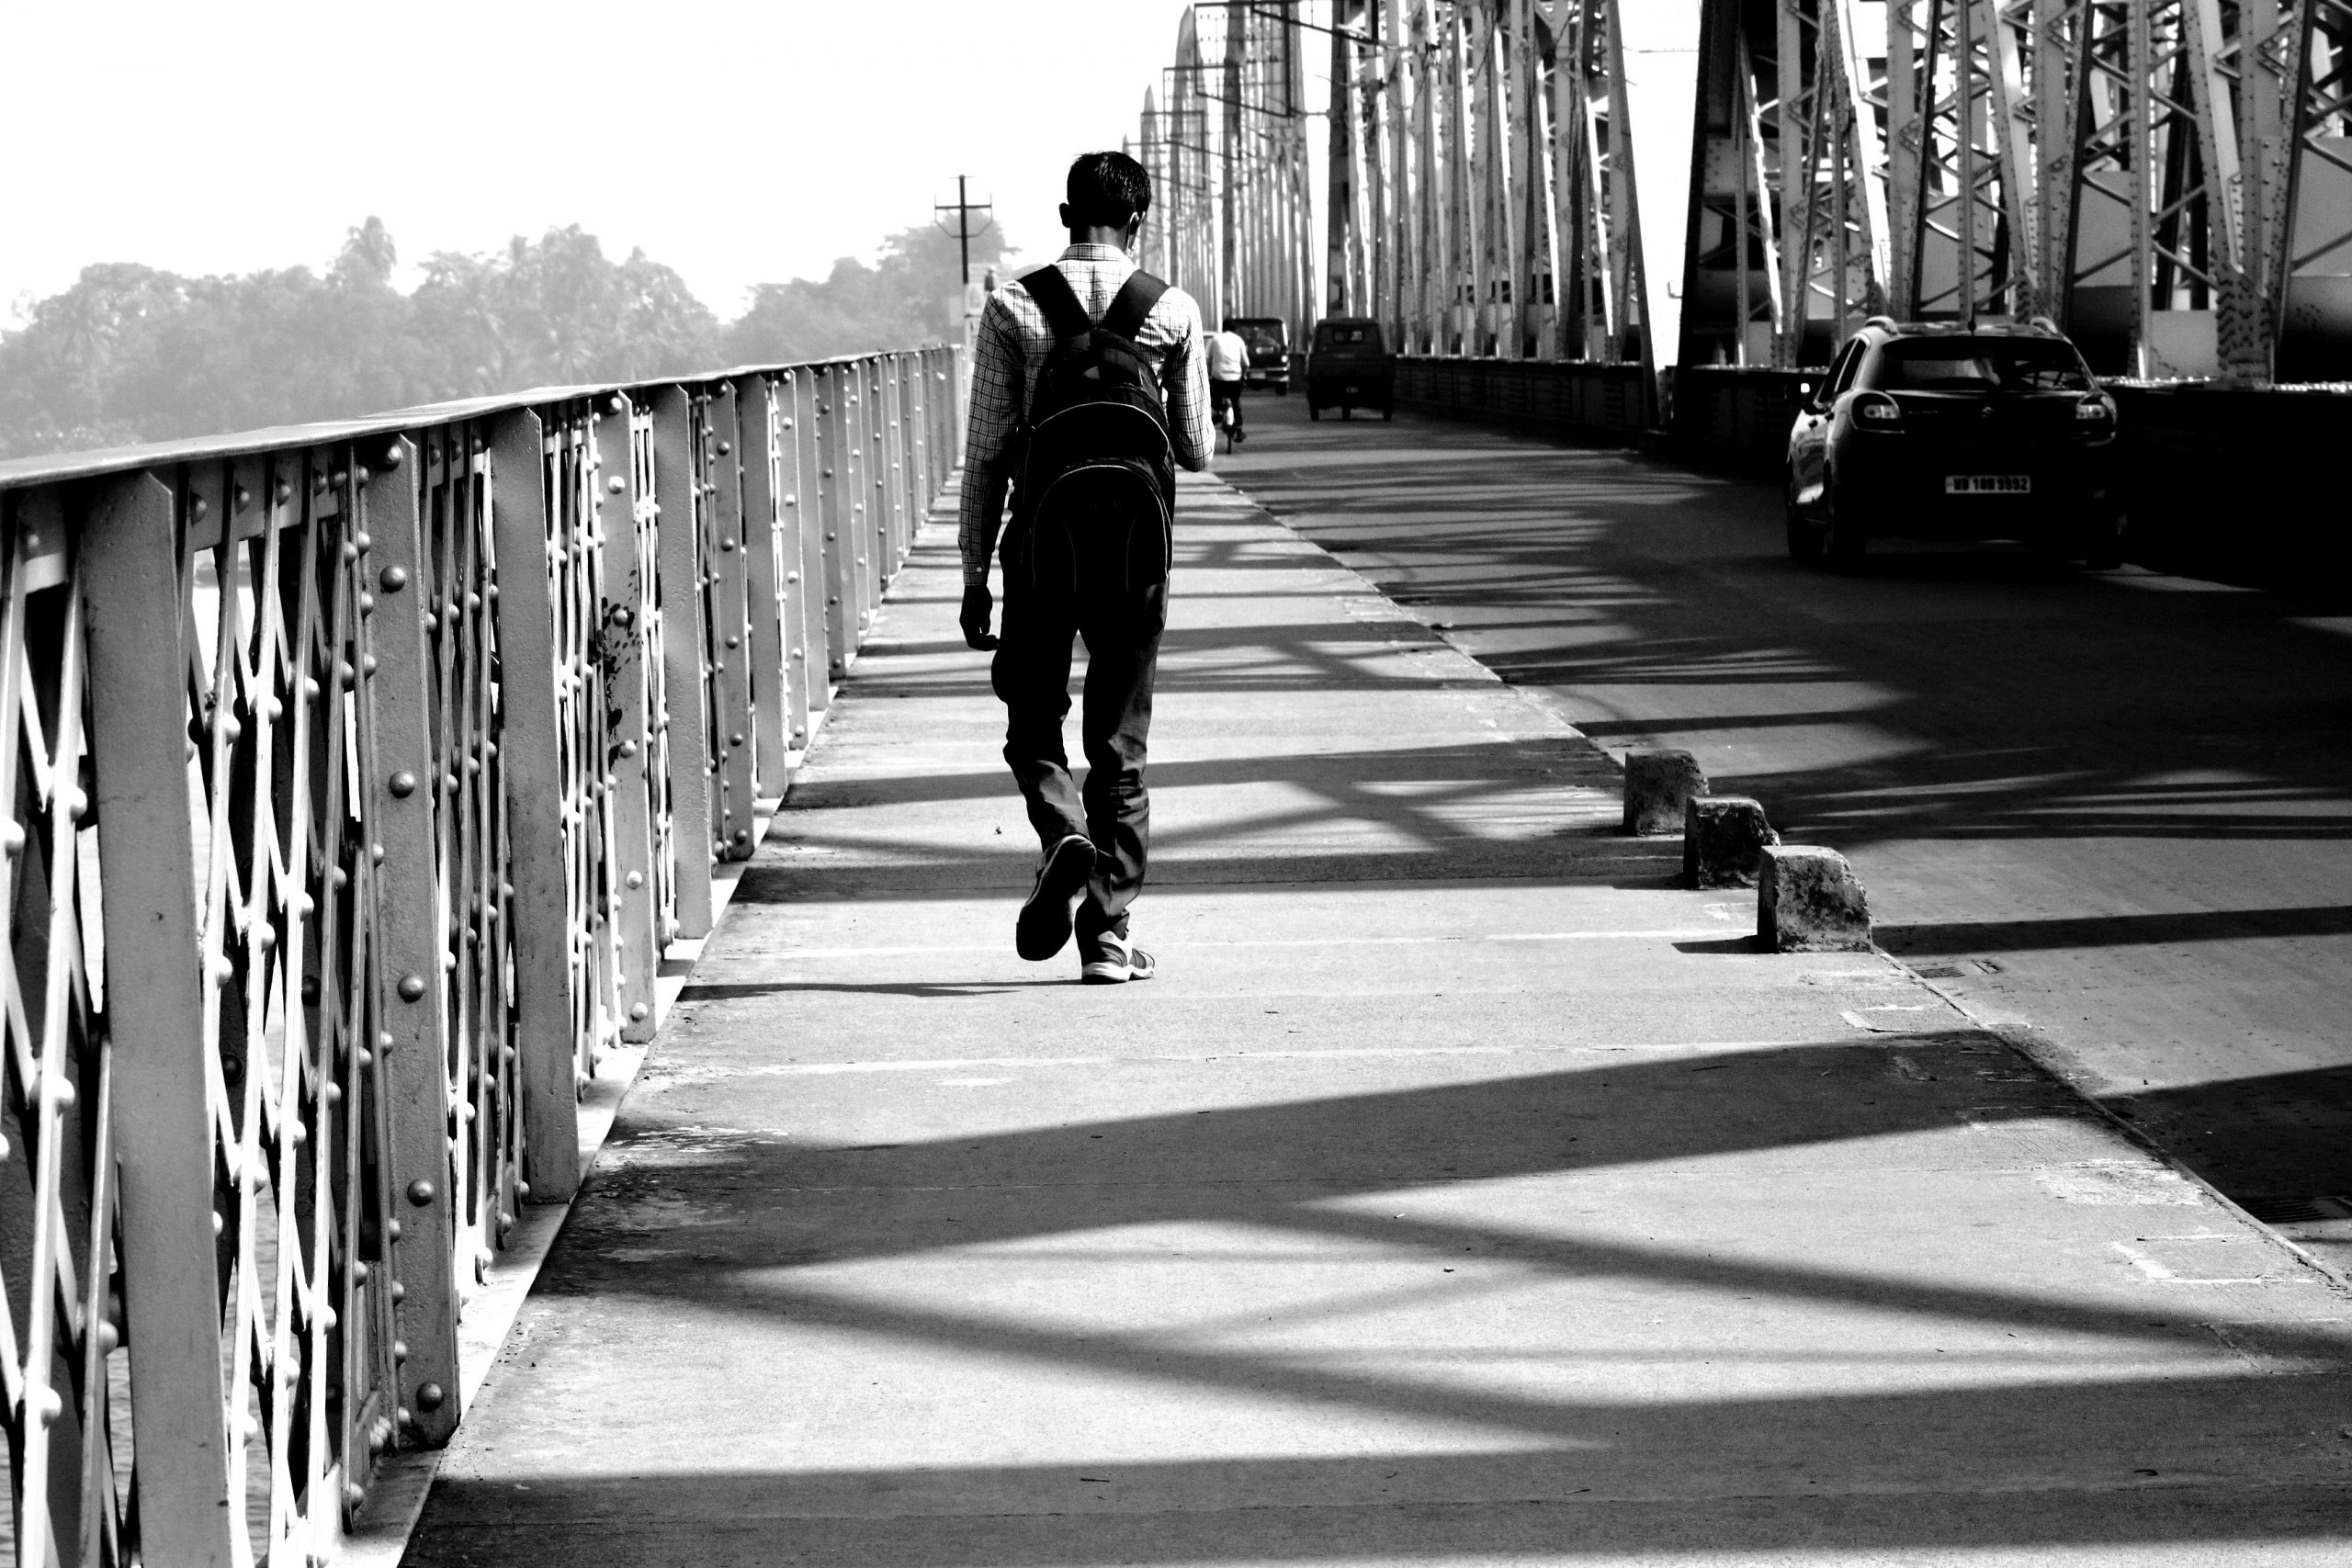 A boy walking on a bridge